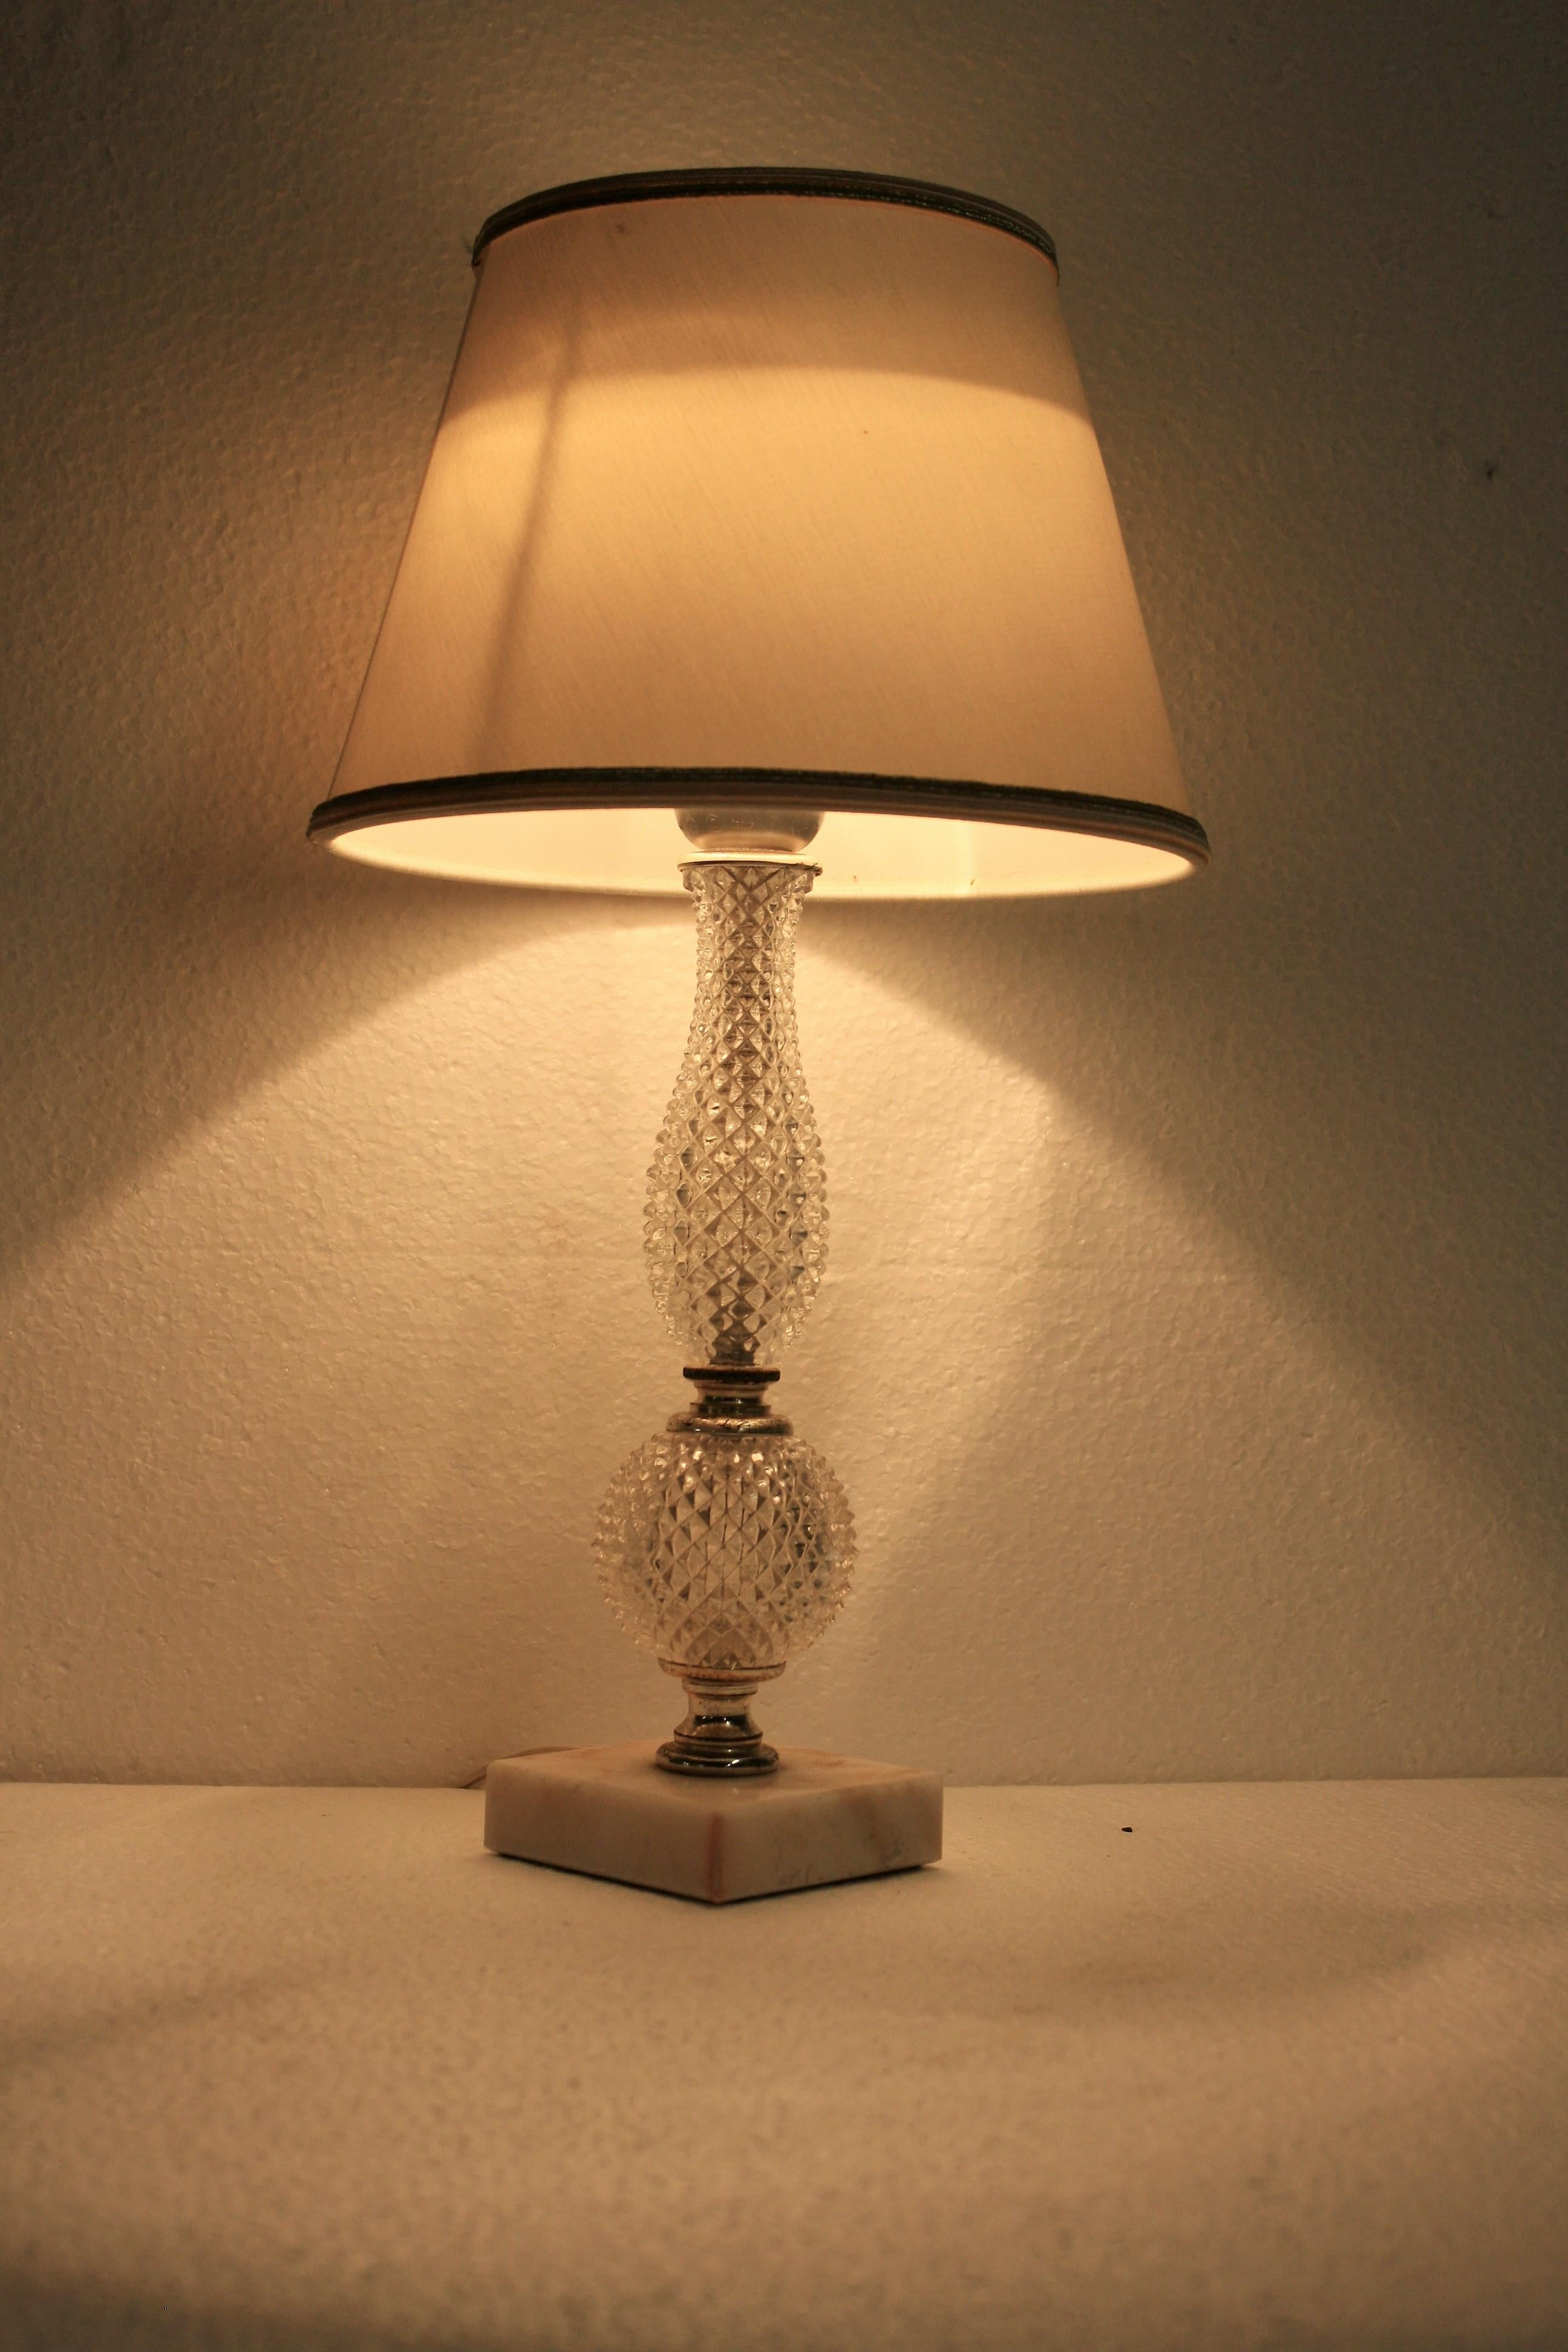 Rechmann Verlichting Weert Vintage Italian Table Lamp Made From Marble And Crystal 1960s